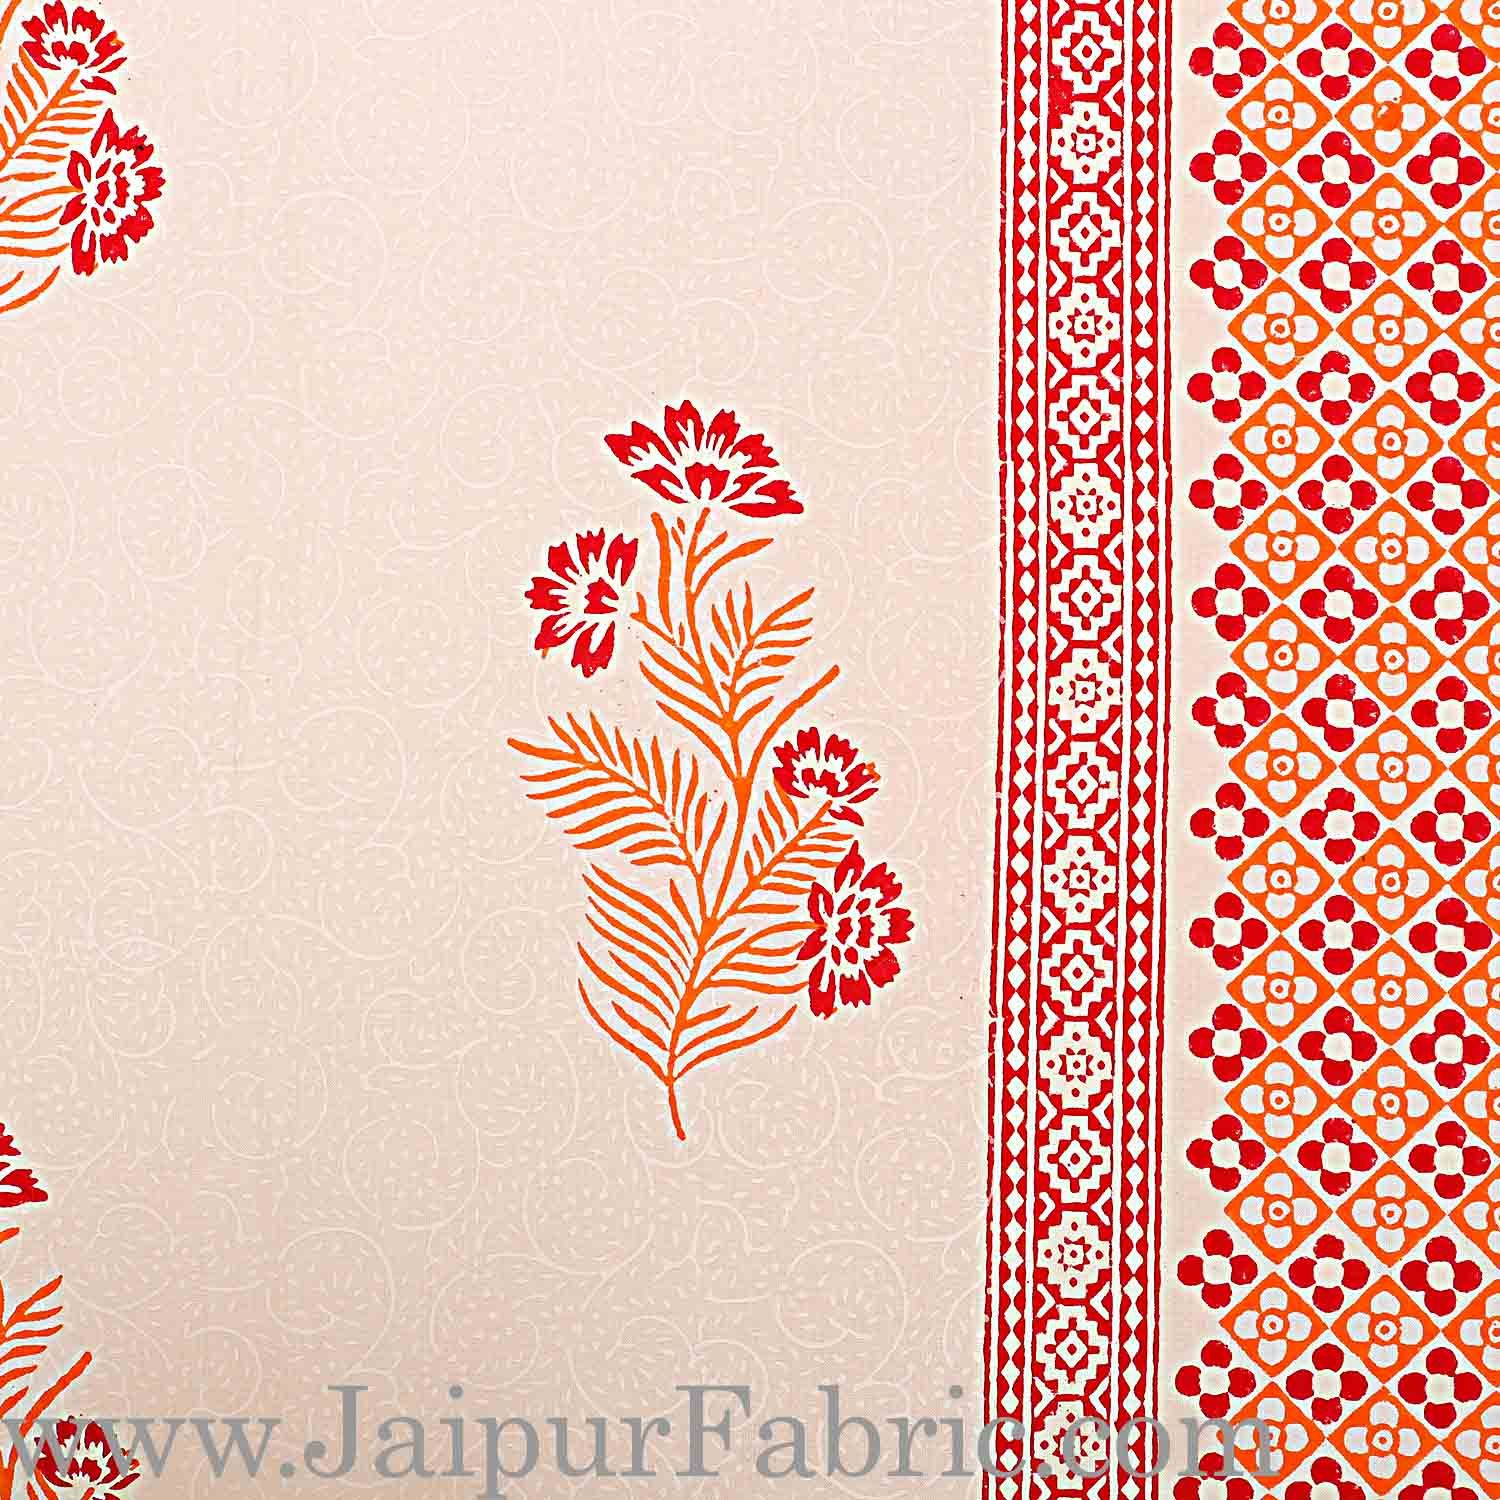 Double Bed Sheet White Base With Kadi Print Blue PaisleyButa Hand Block Print Super Fine  Cotton